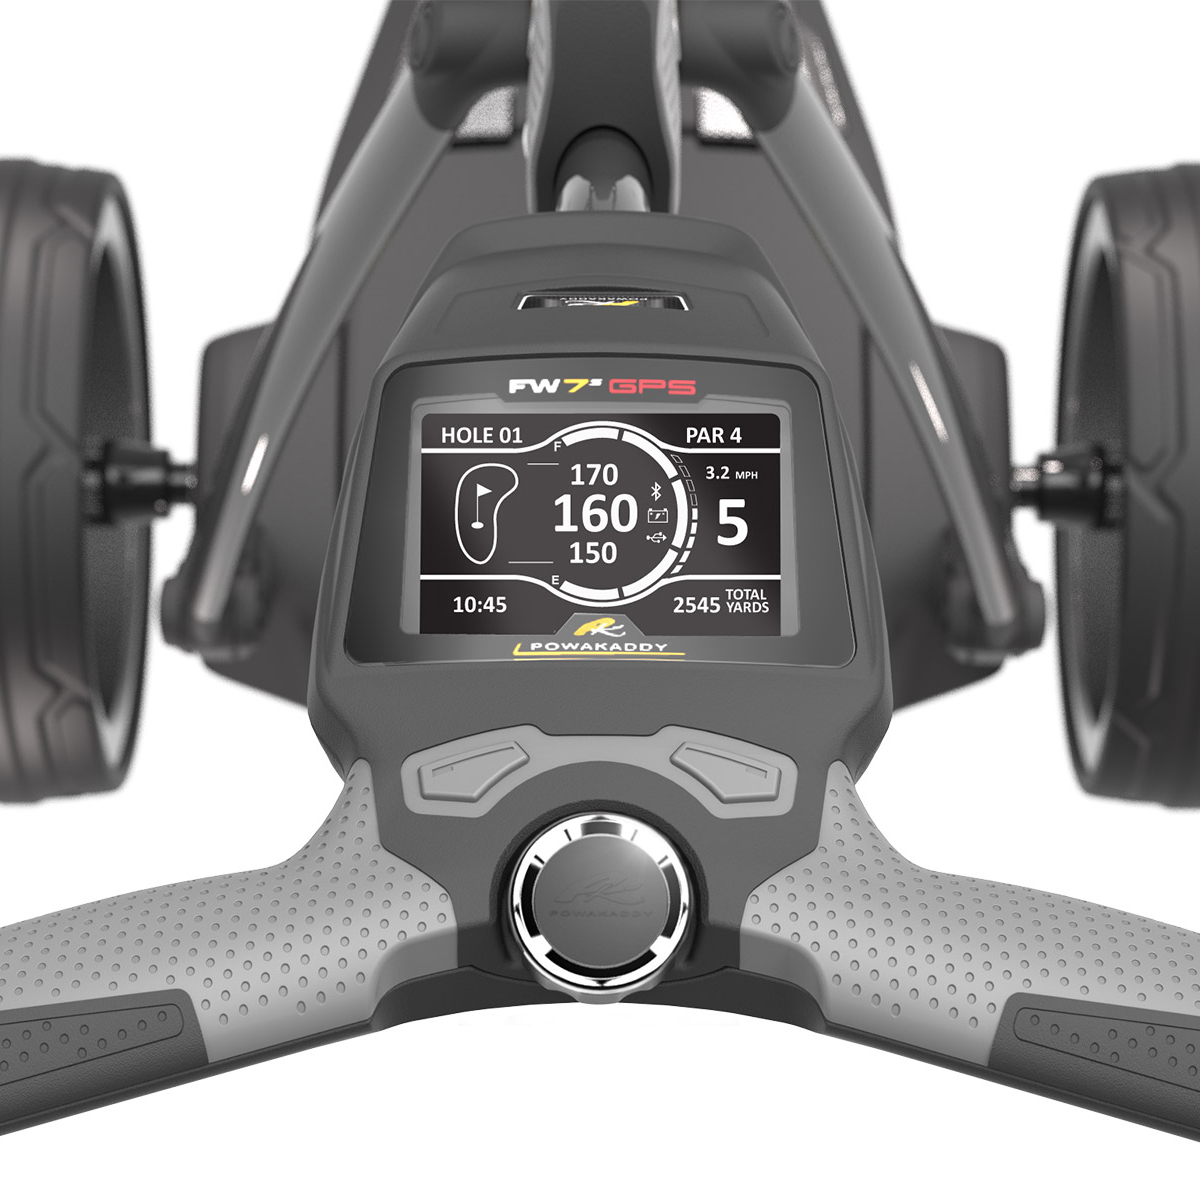 PowaKaddy FW7s 18 Hole Lithium GPS Electric Trolley